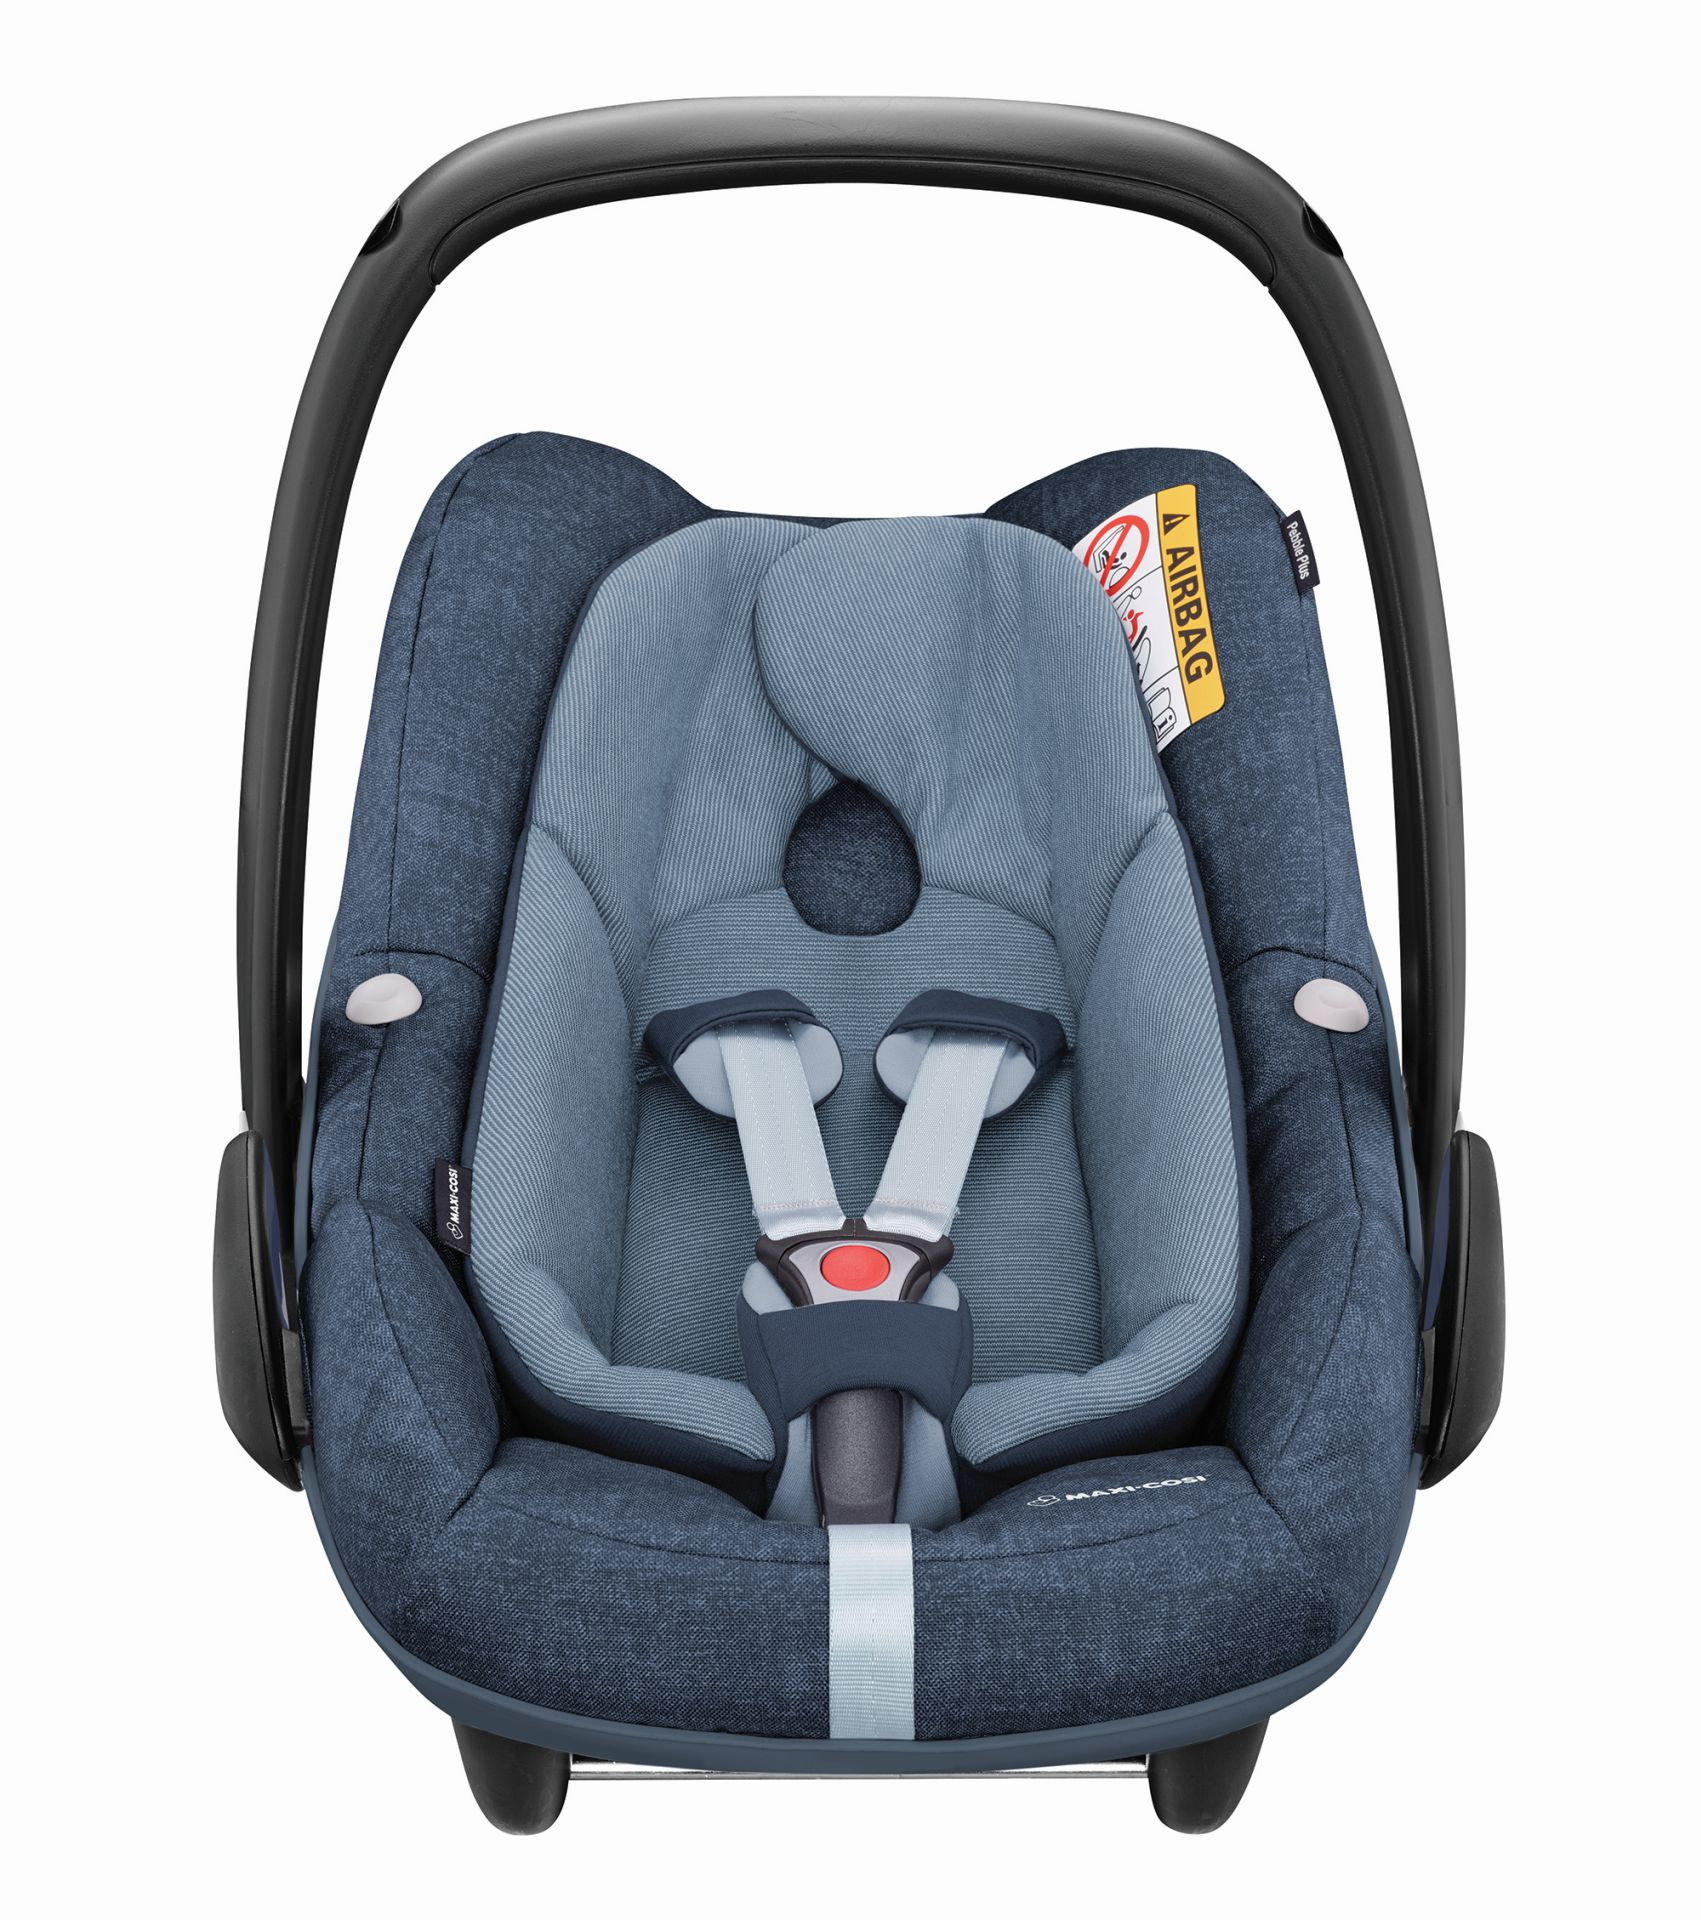 maxi cosi 2way family concept buy at kidsroom car seats. Black Bedroom Furniture Sets. Home Design Ideas